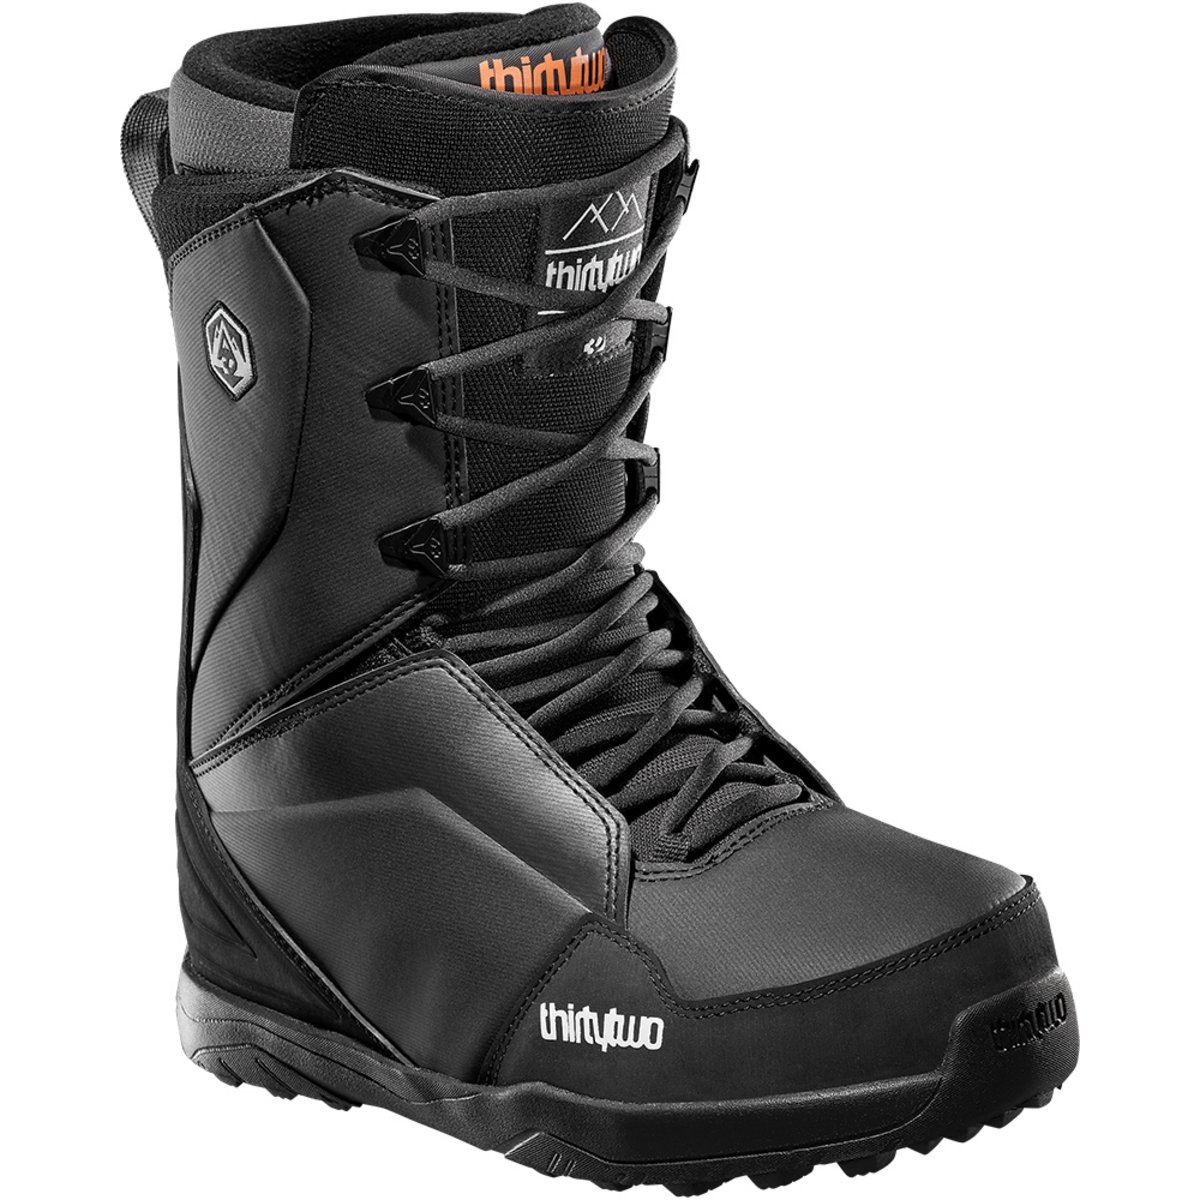 ThirtyTwo Men's Lashed Snowboard Boots 2019 / 2020 0